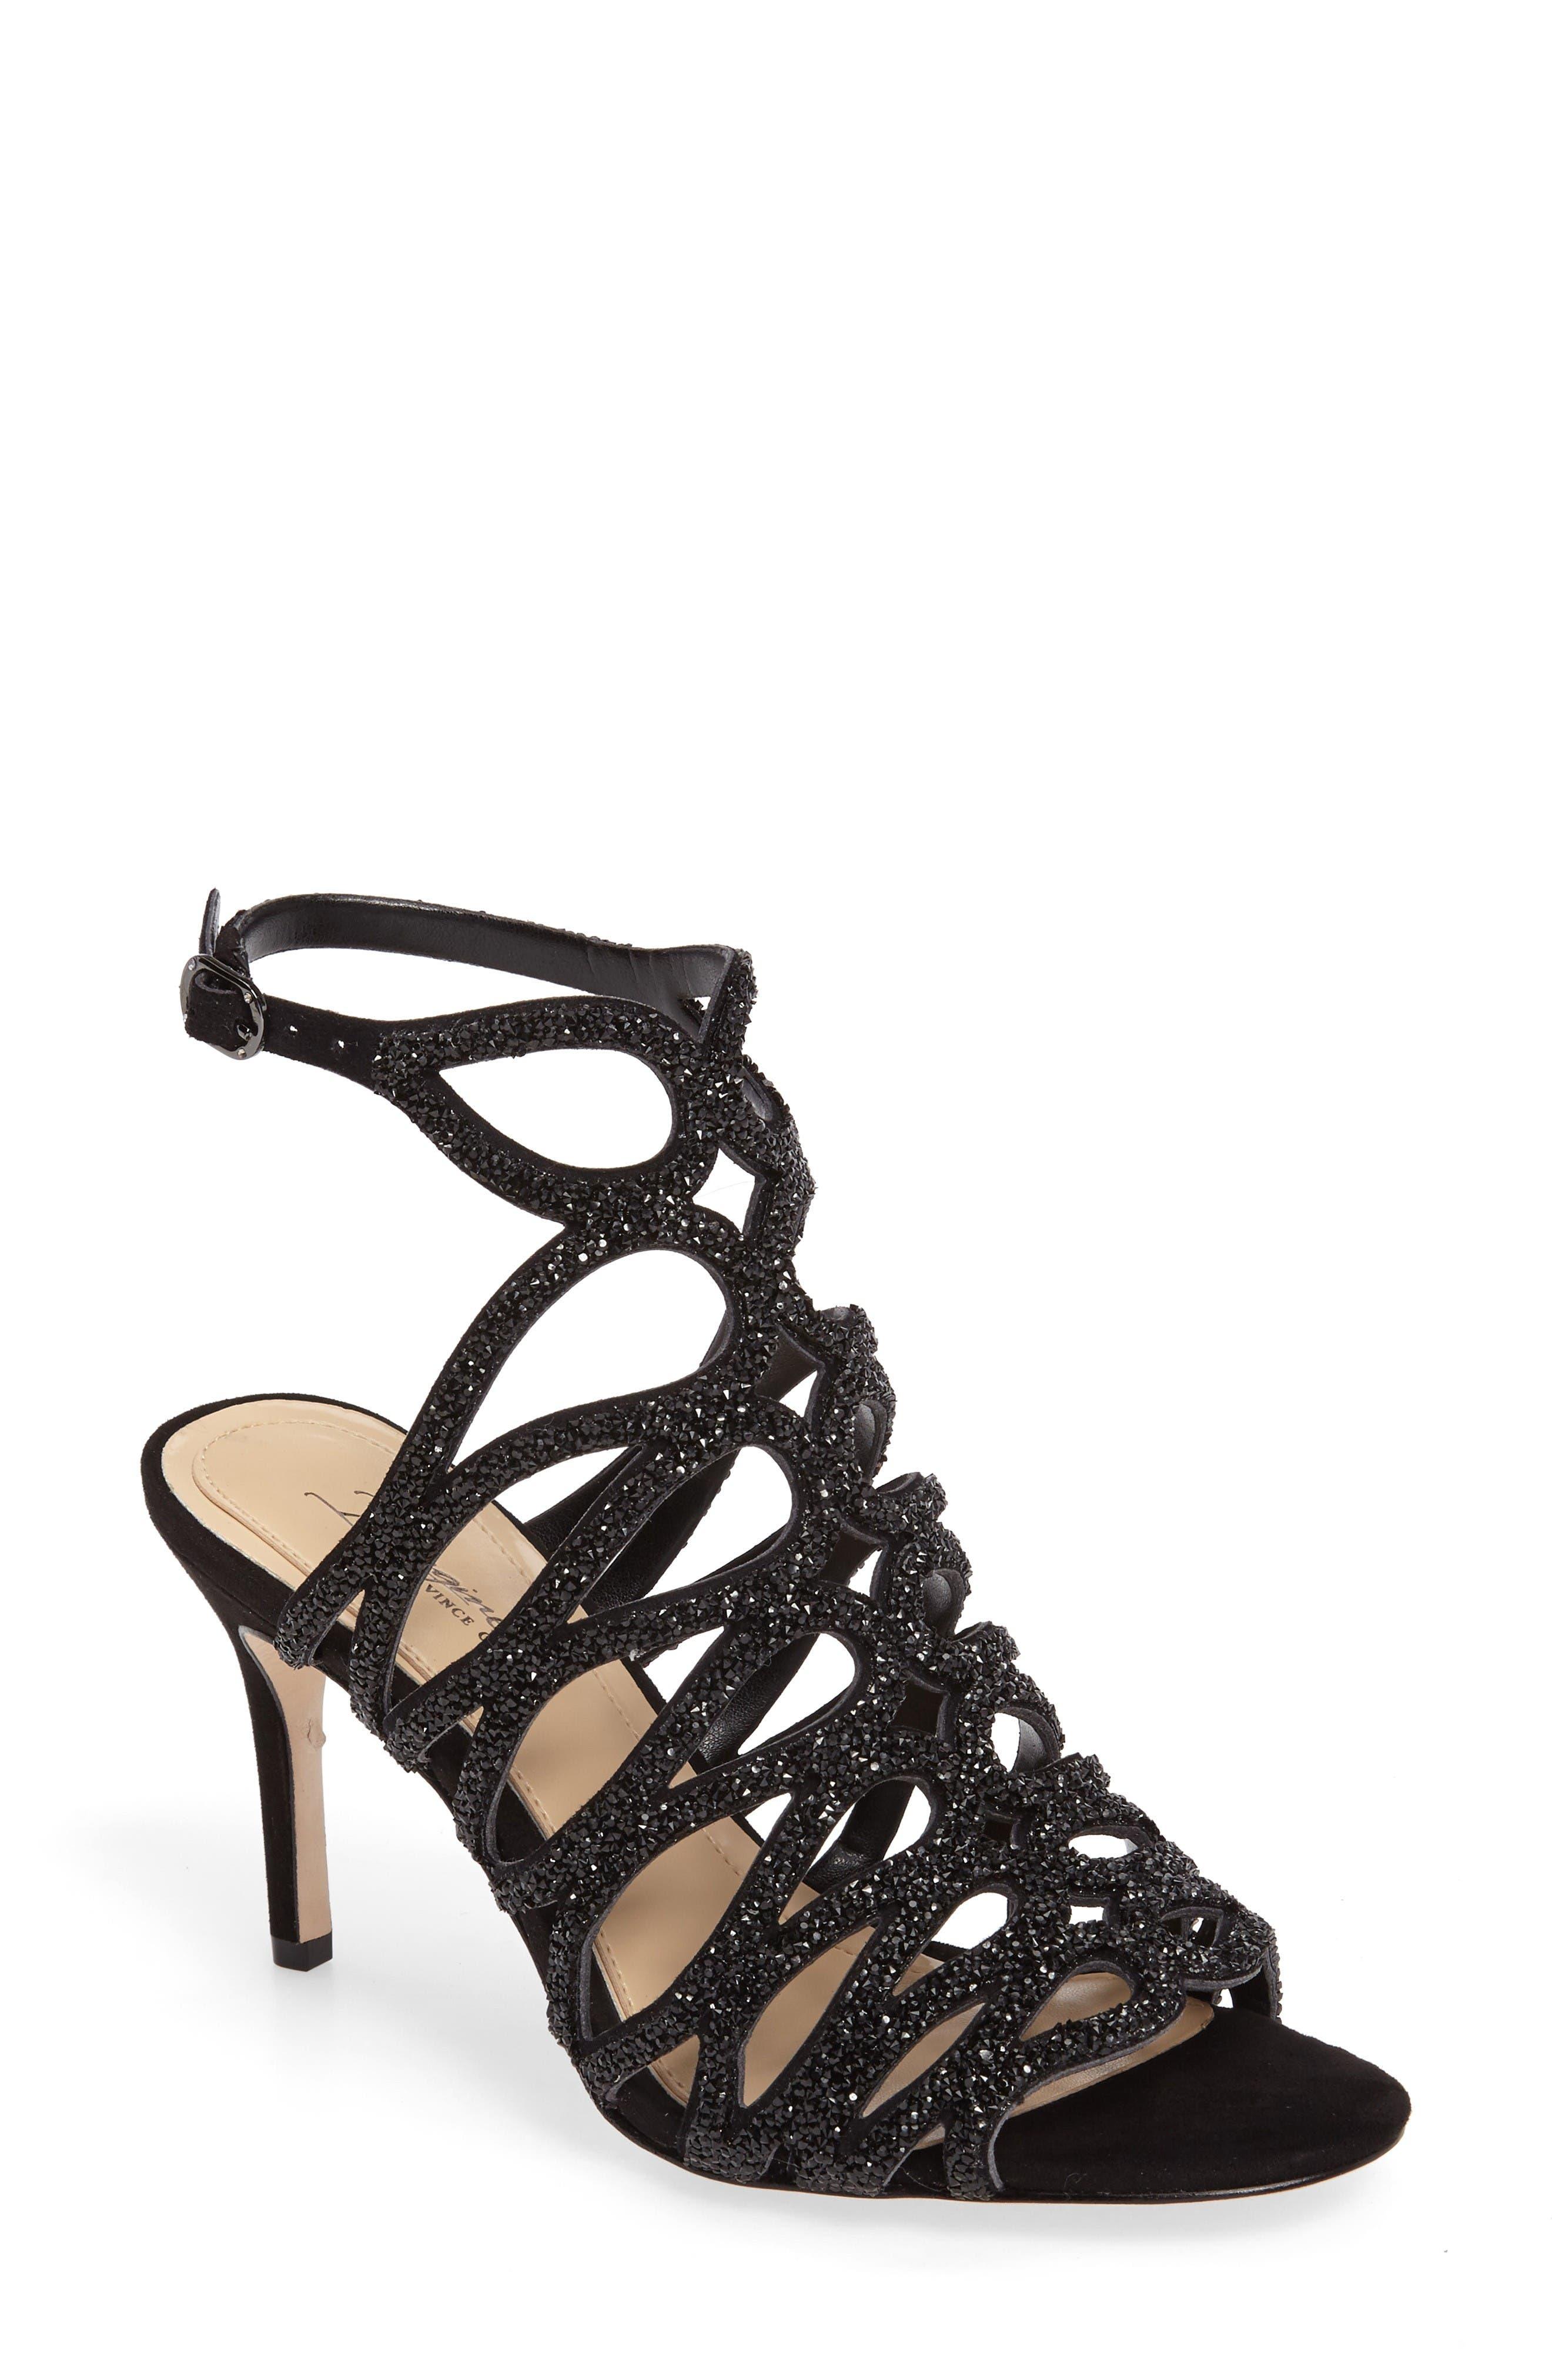 Main Image - Imagine by Vince Camuto Plash Glitter Cage Sandal (Women)